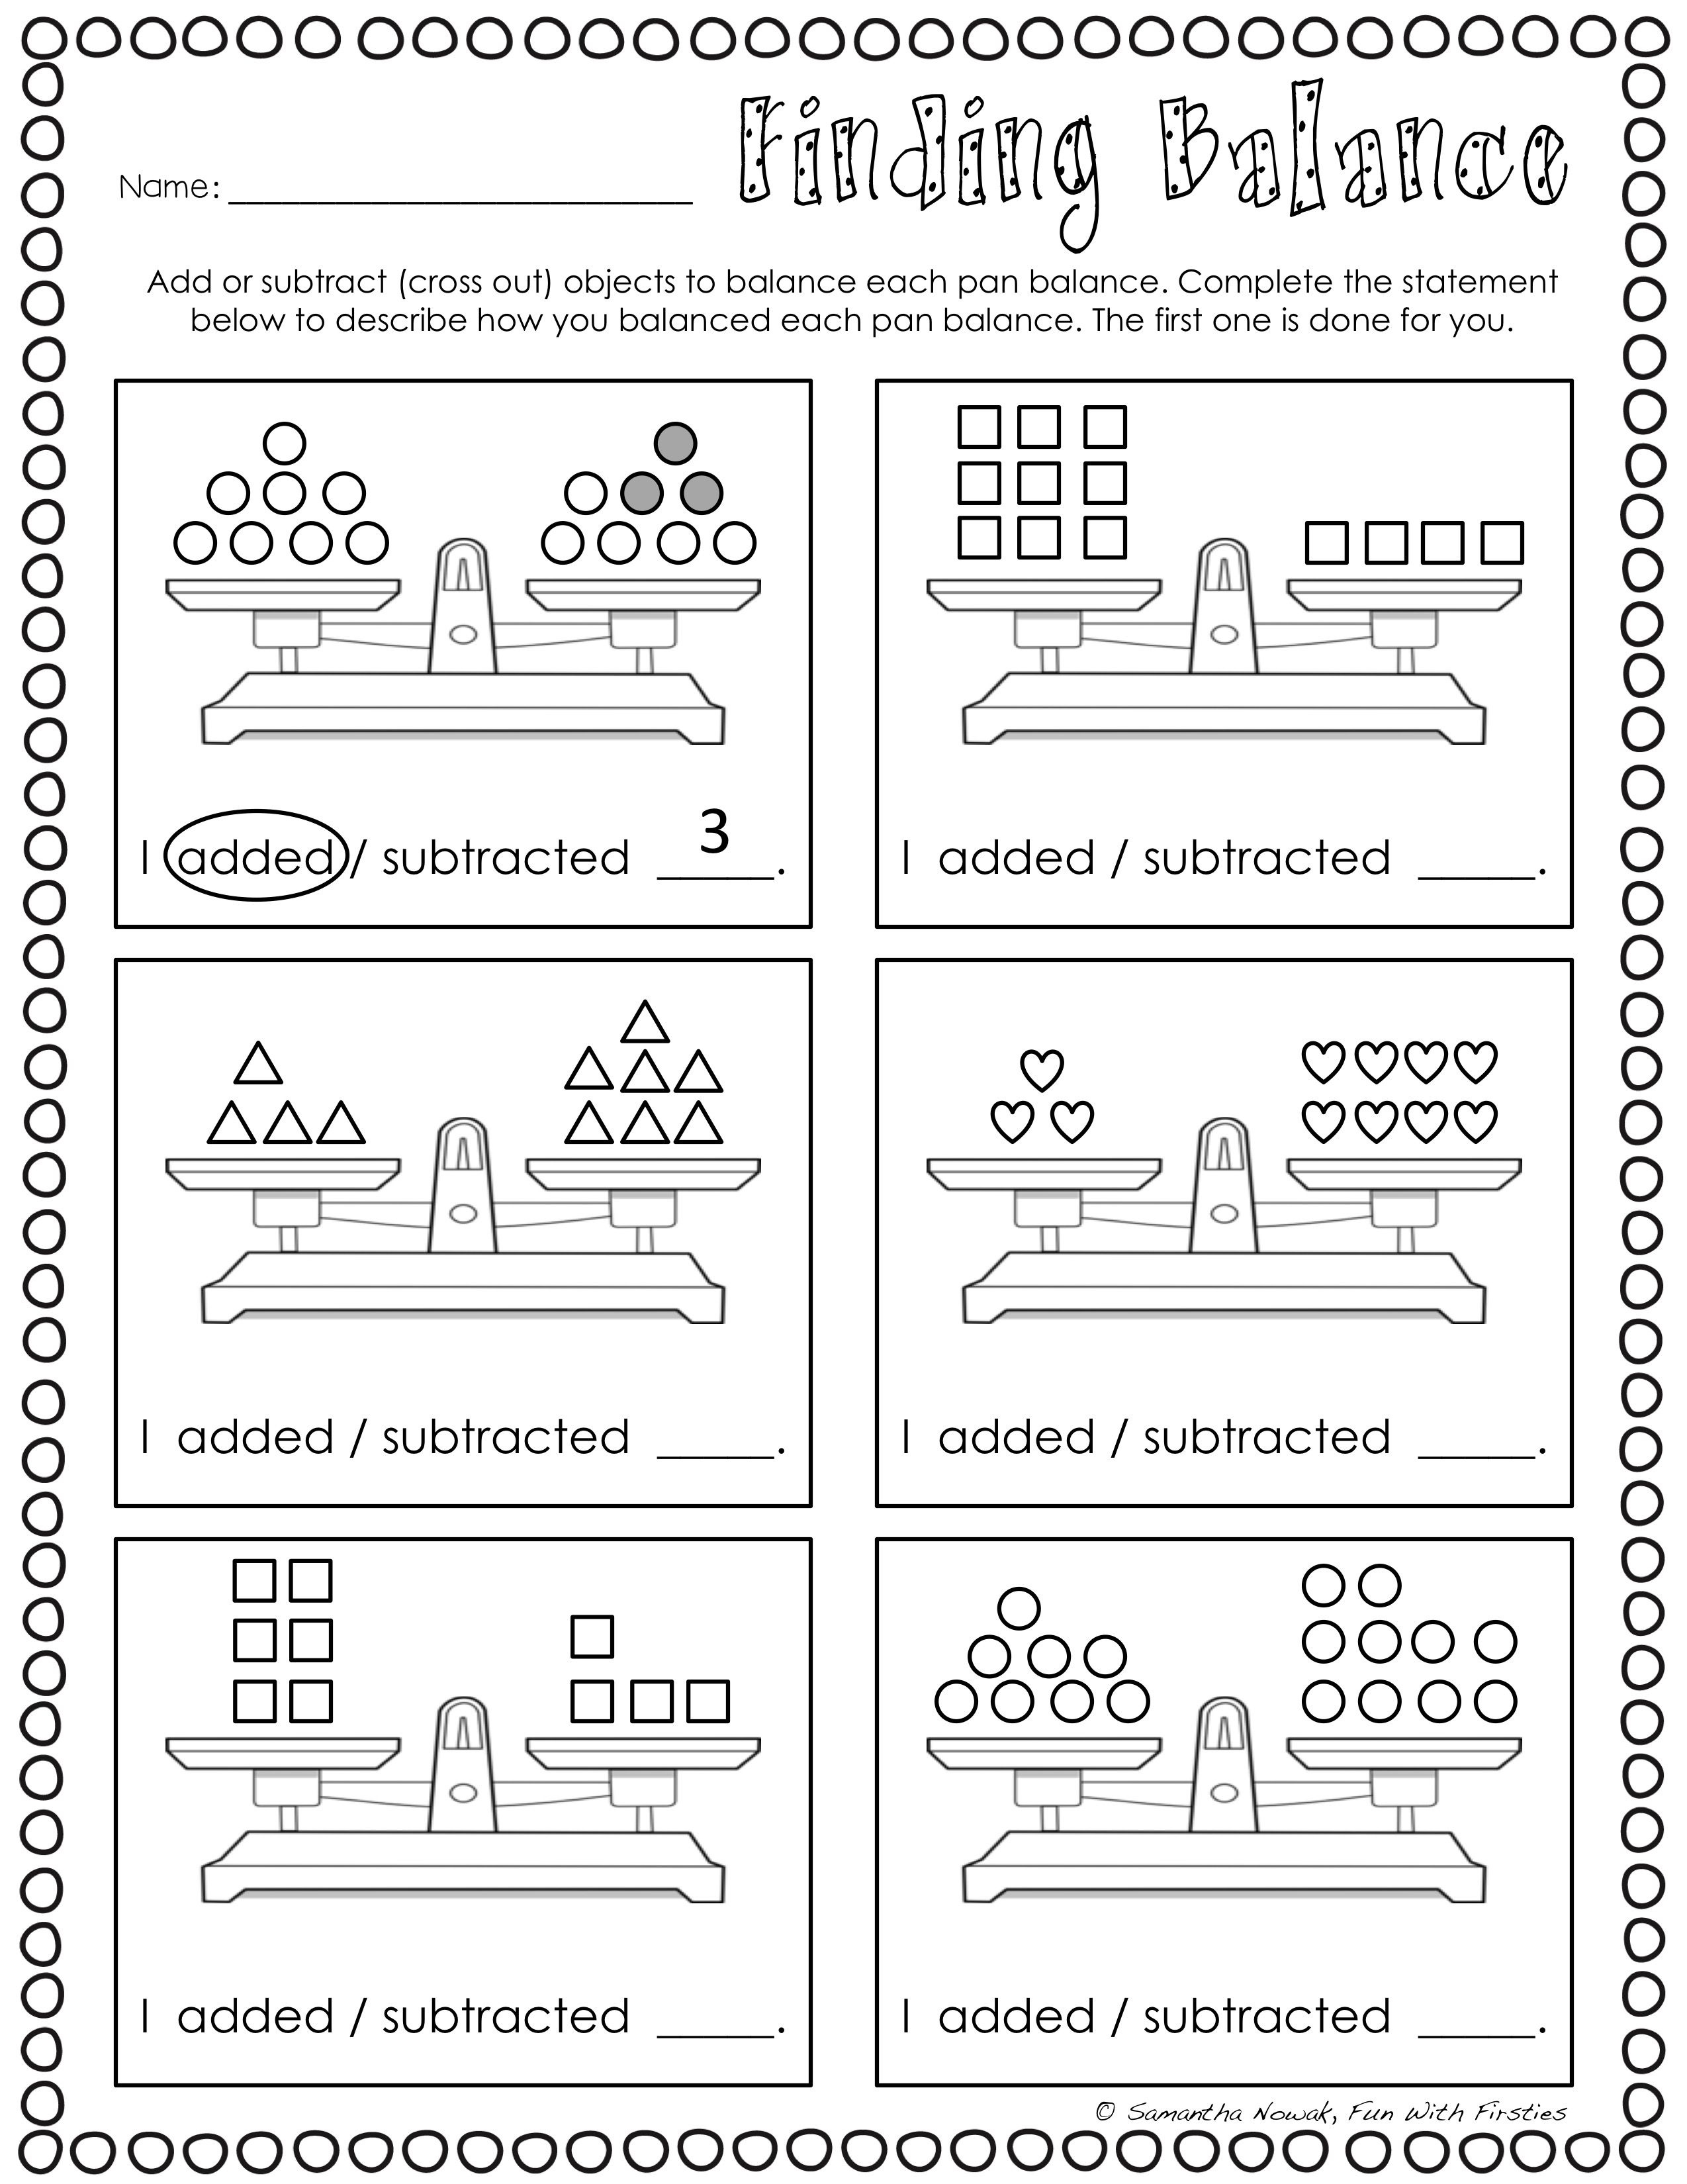 Balancing Equations Print Amp Go Worksheets For Extra